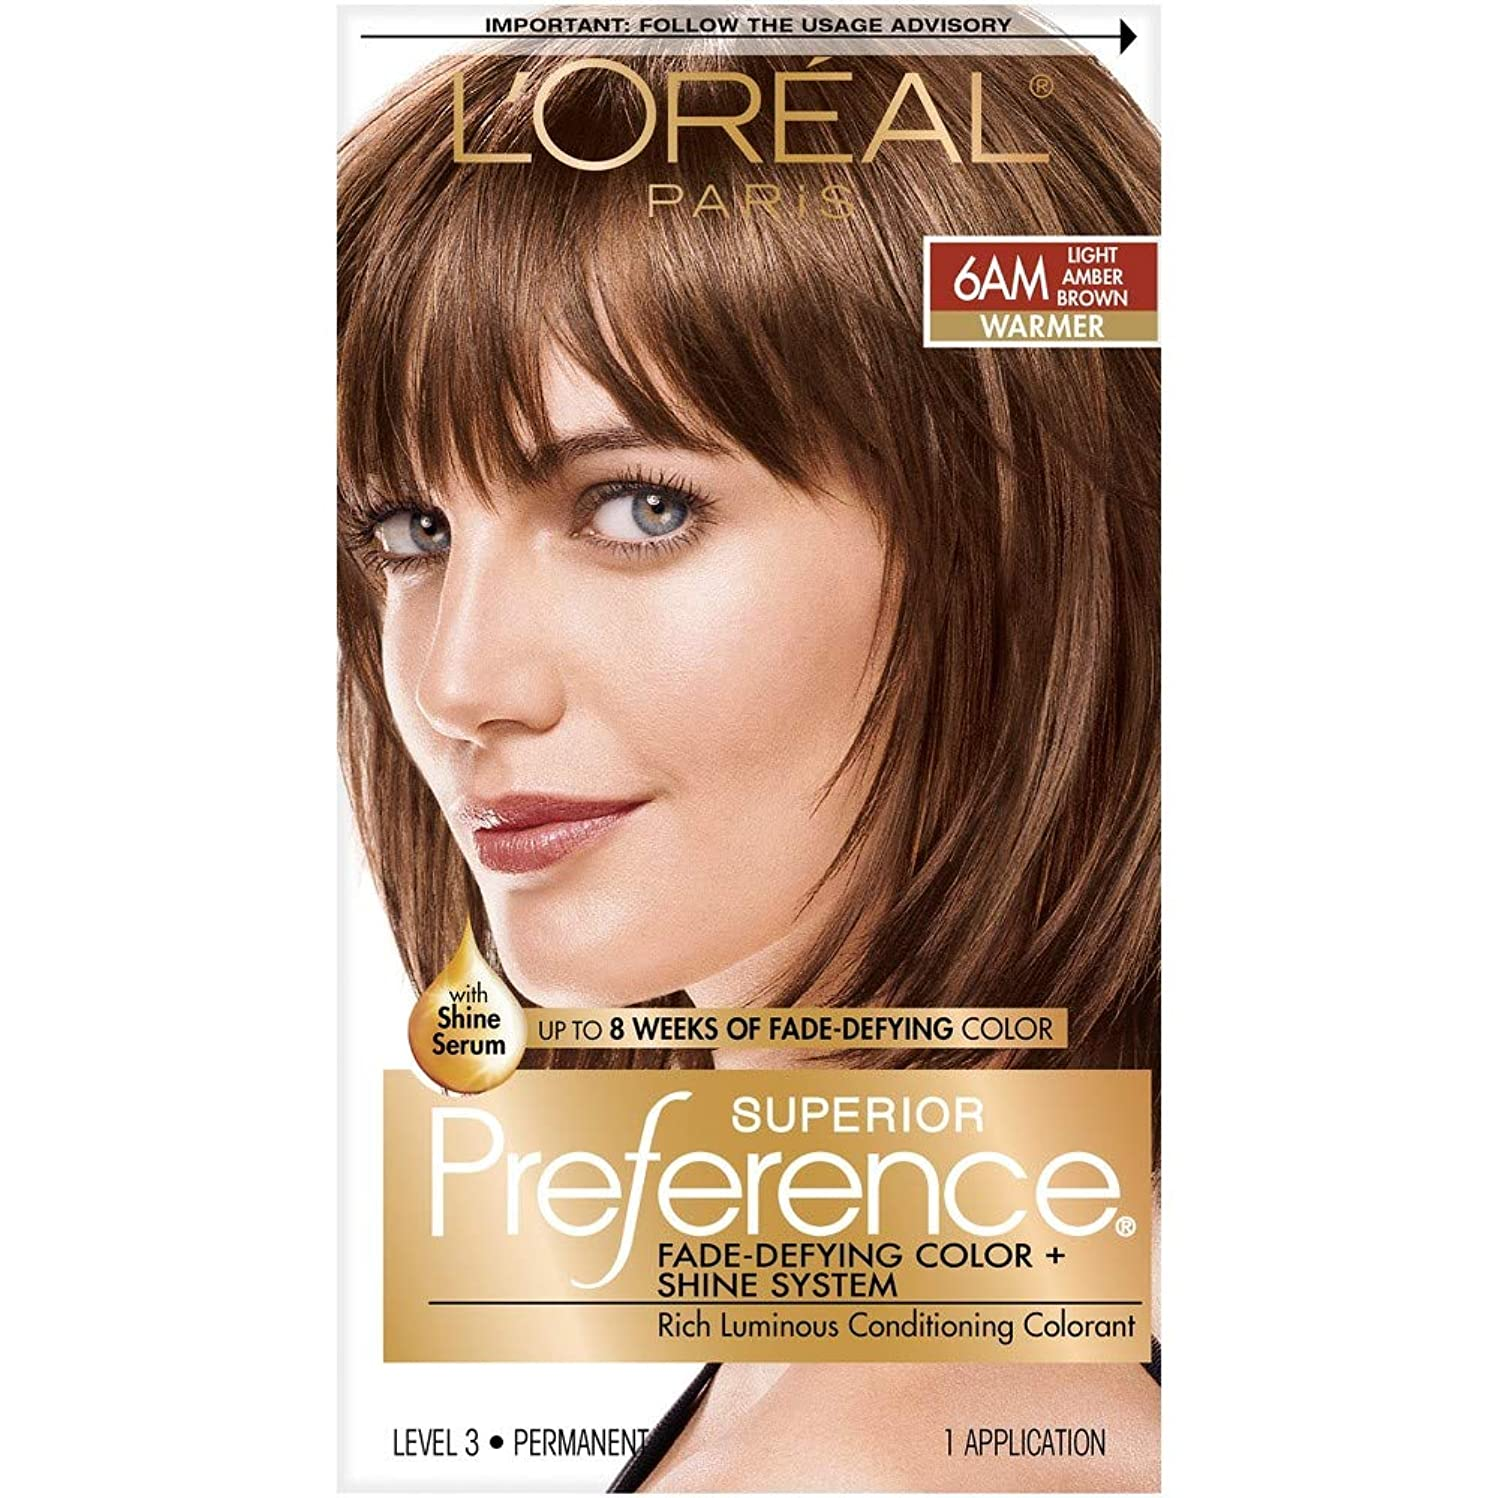 L'Oreal Superior Preference - 6AM Light Amber Brown (Warmer) 1 Each (Pack of 8)